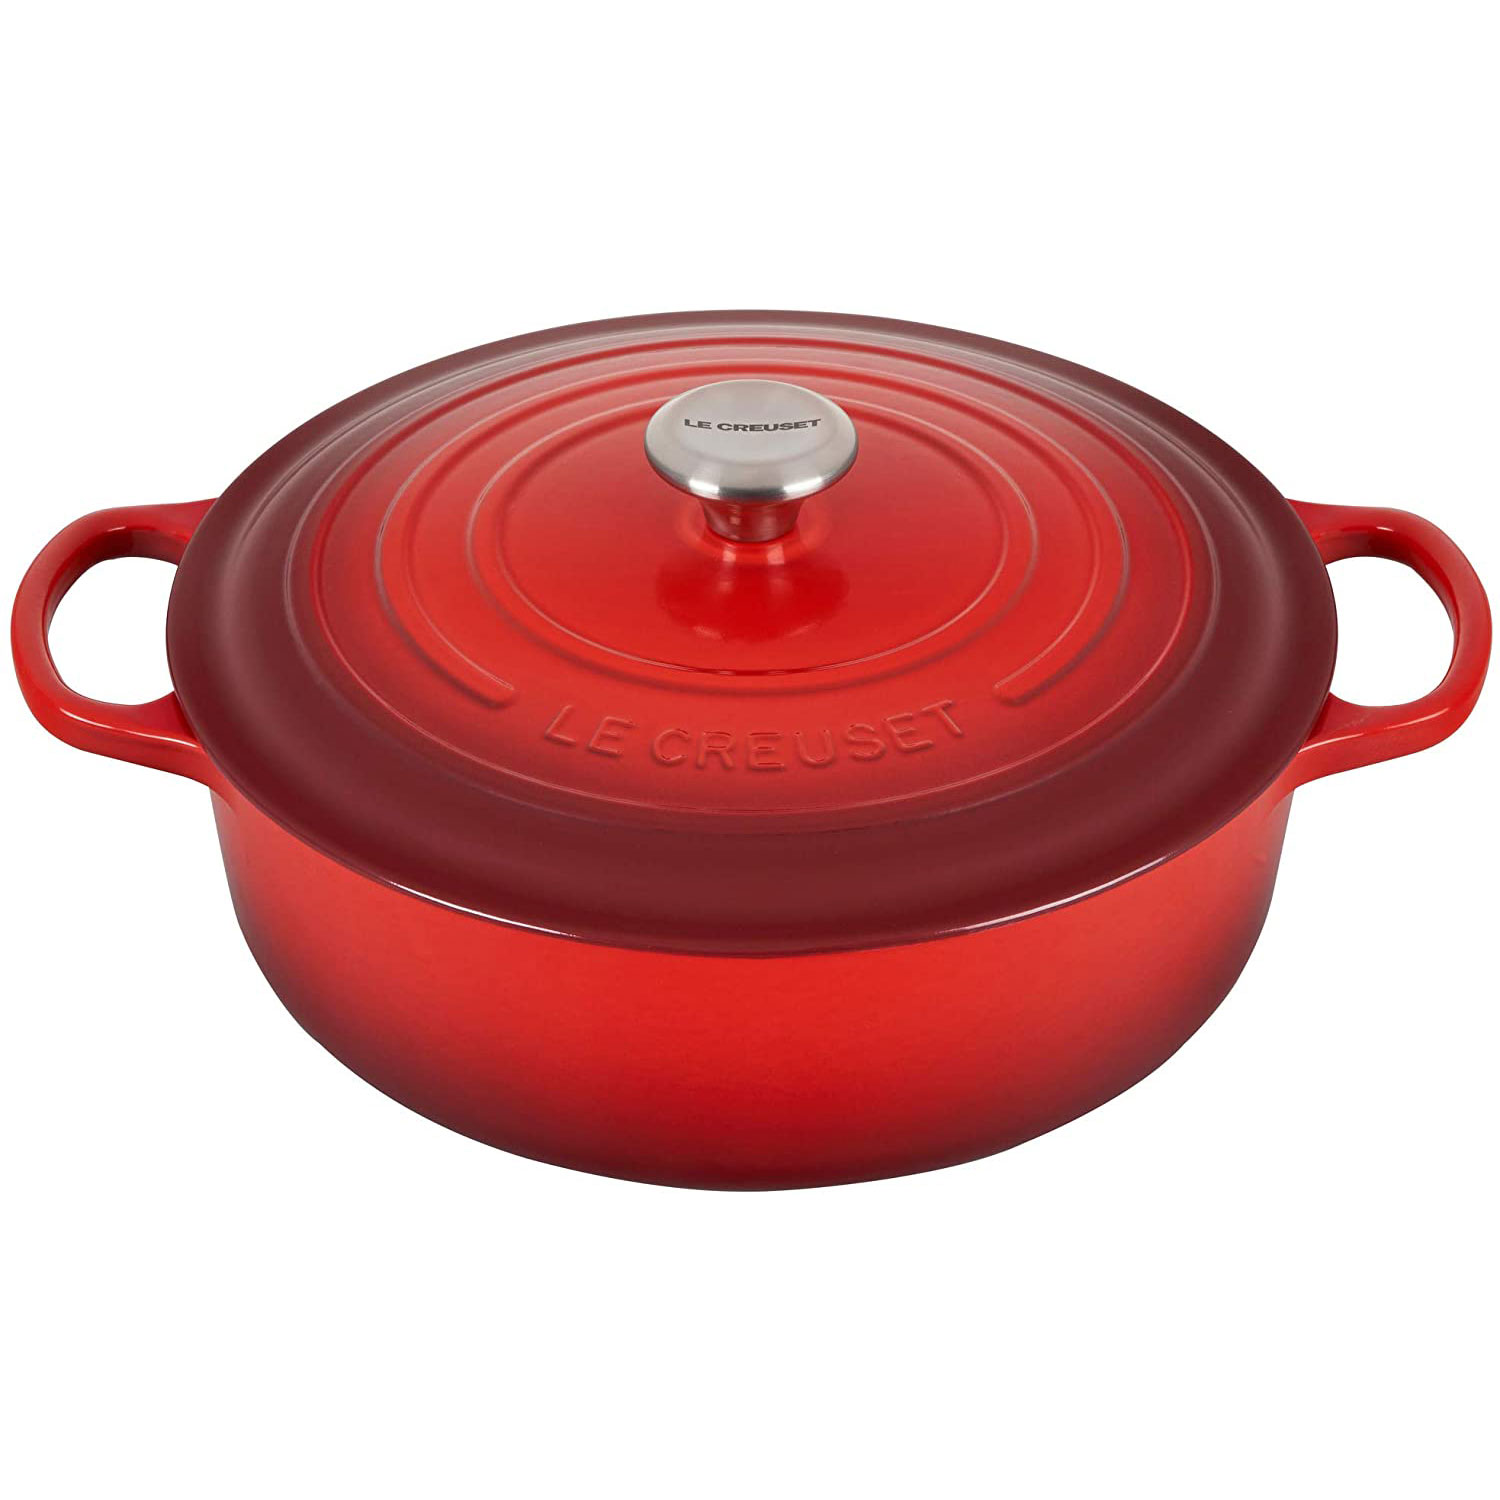 Le Creuset Enameled Cast Iron Signature Round Wide Dutch Oven